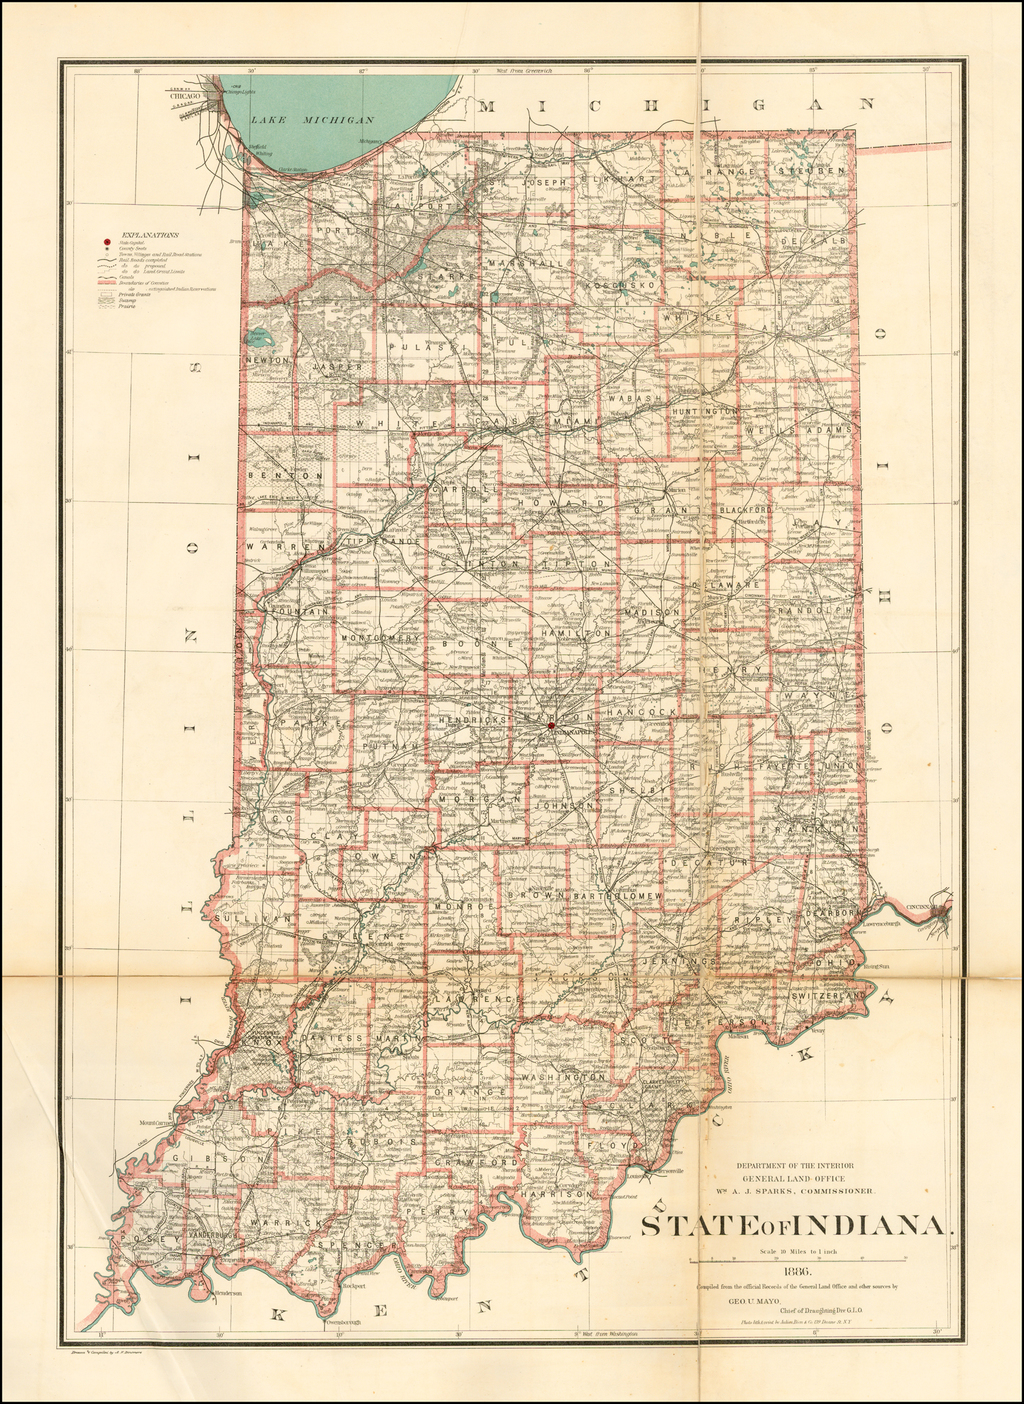 State of Indiana . . . 1886.  Compiled from the official Records of the General Land Office . . . Drawn and Compiled by A. F. Dinsmore. By General Land Office